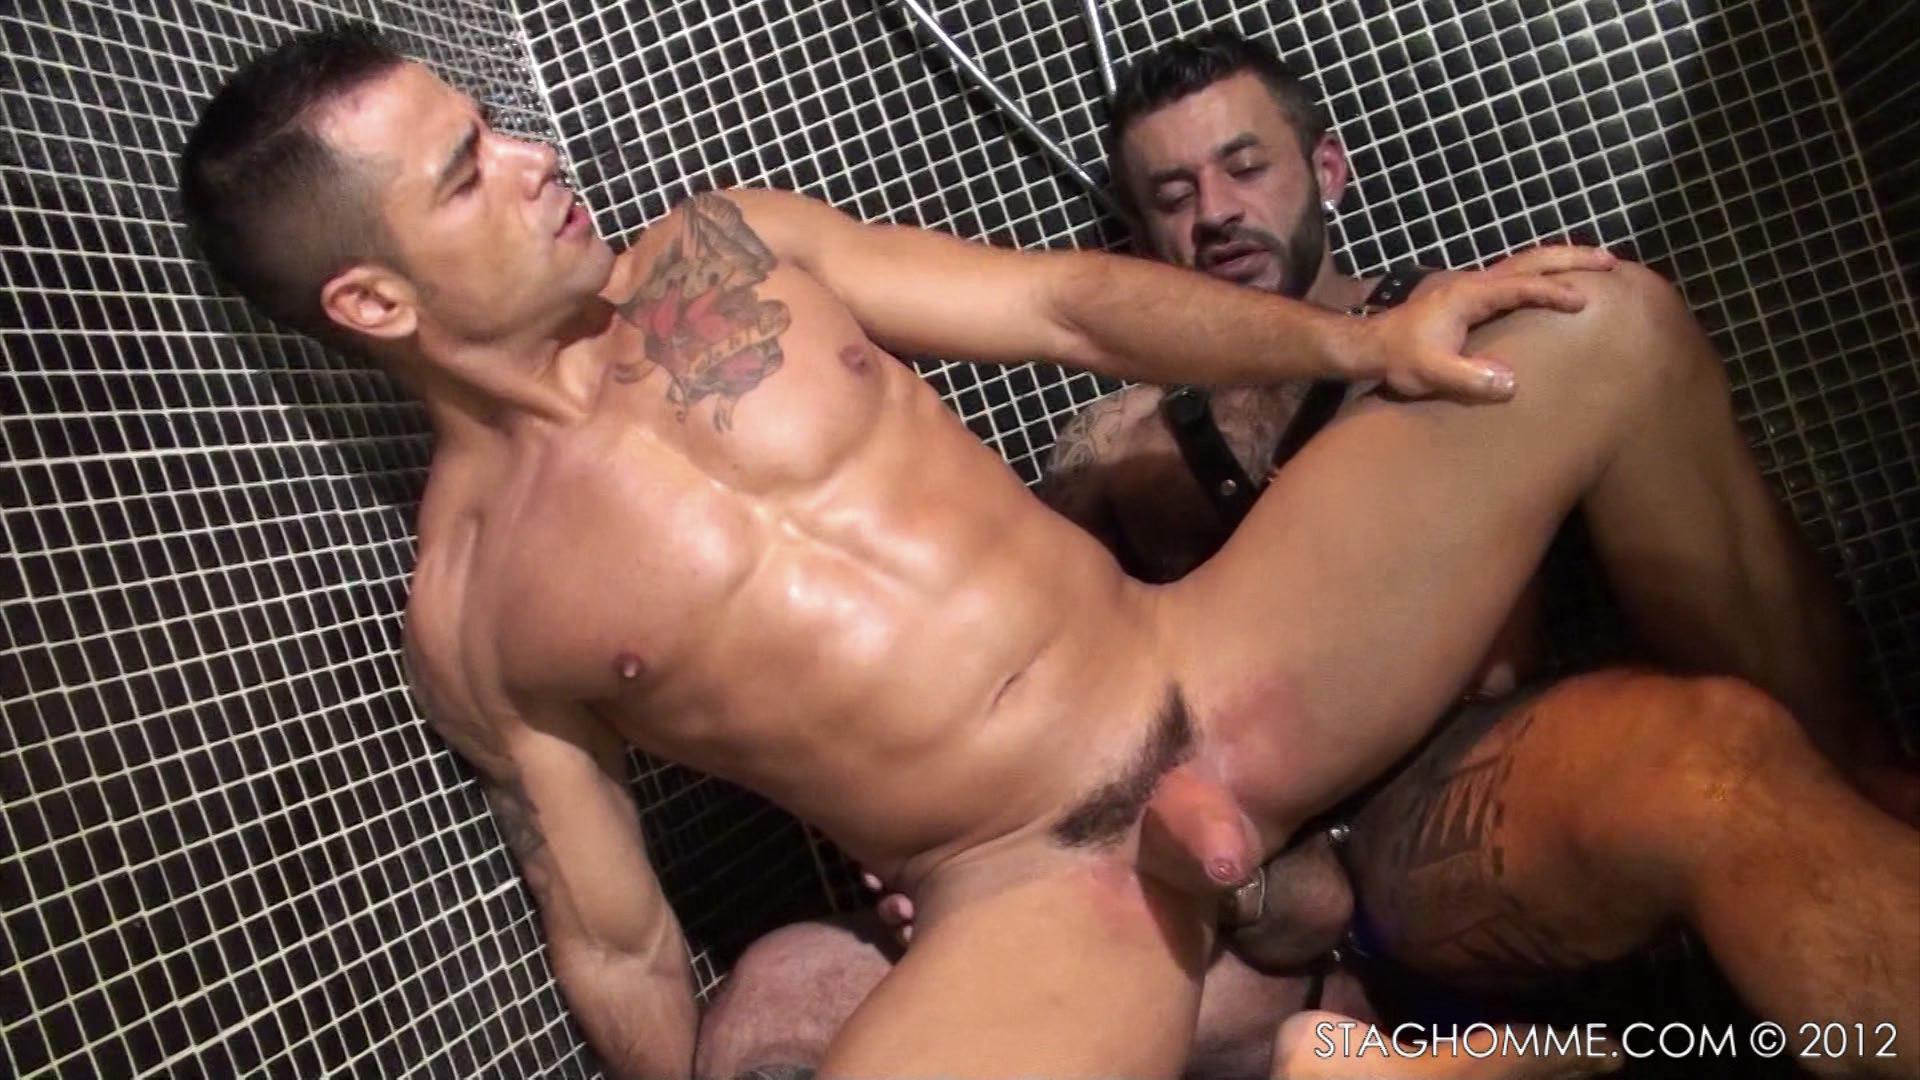 Dirty Boys Xvideo gay